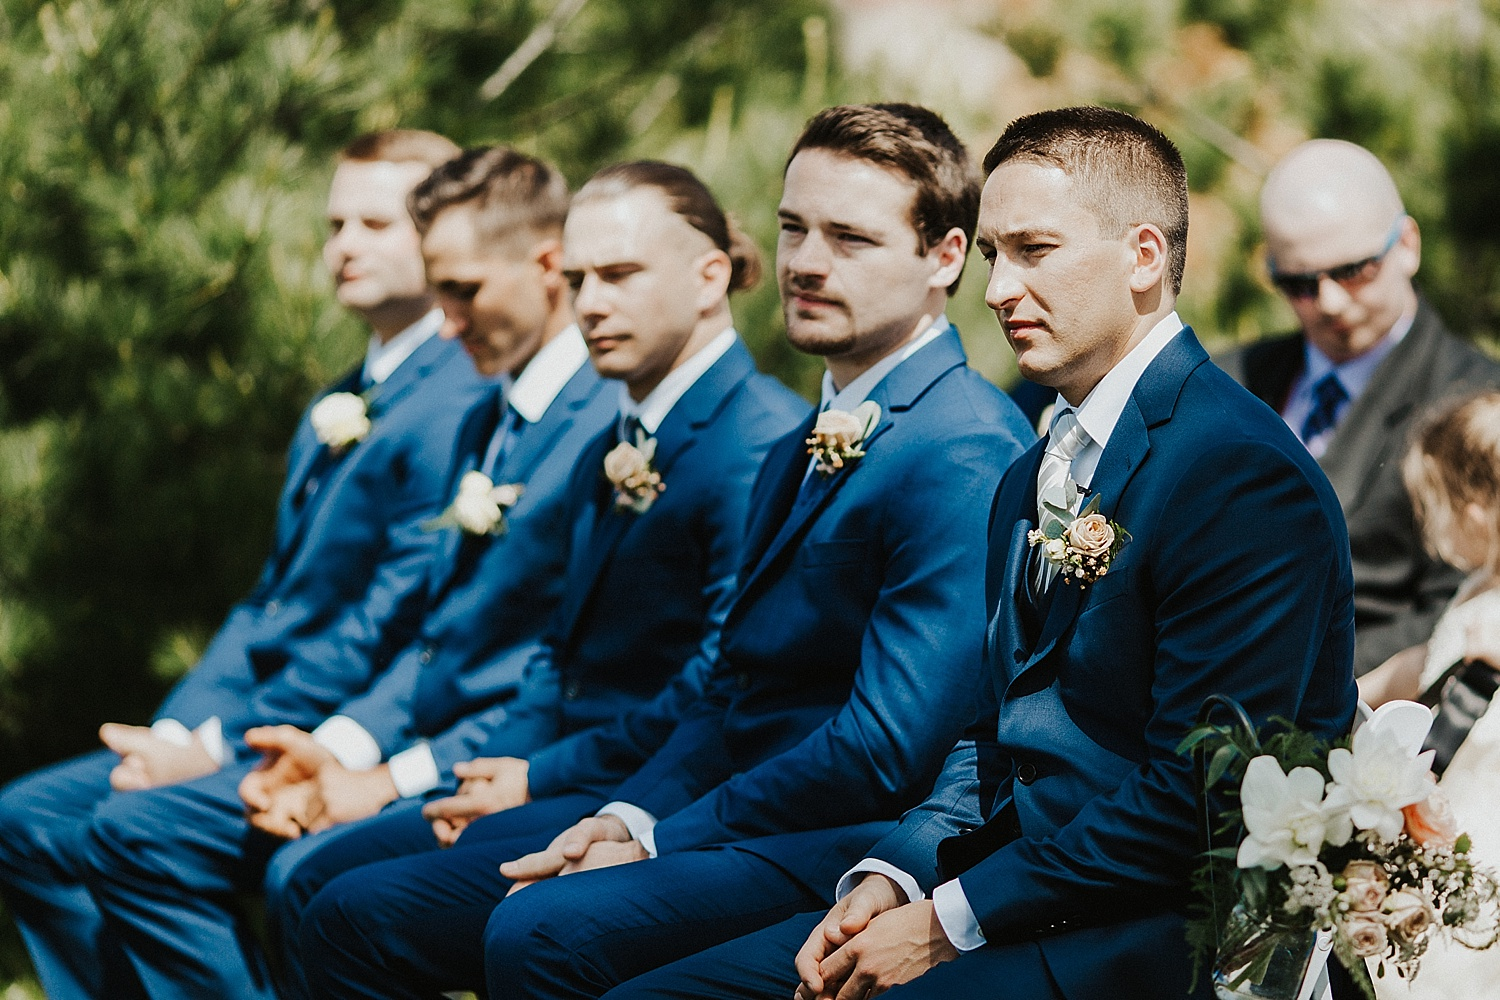 Groom and groomsment during the wedding ceremony